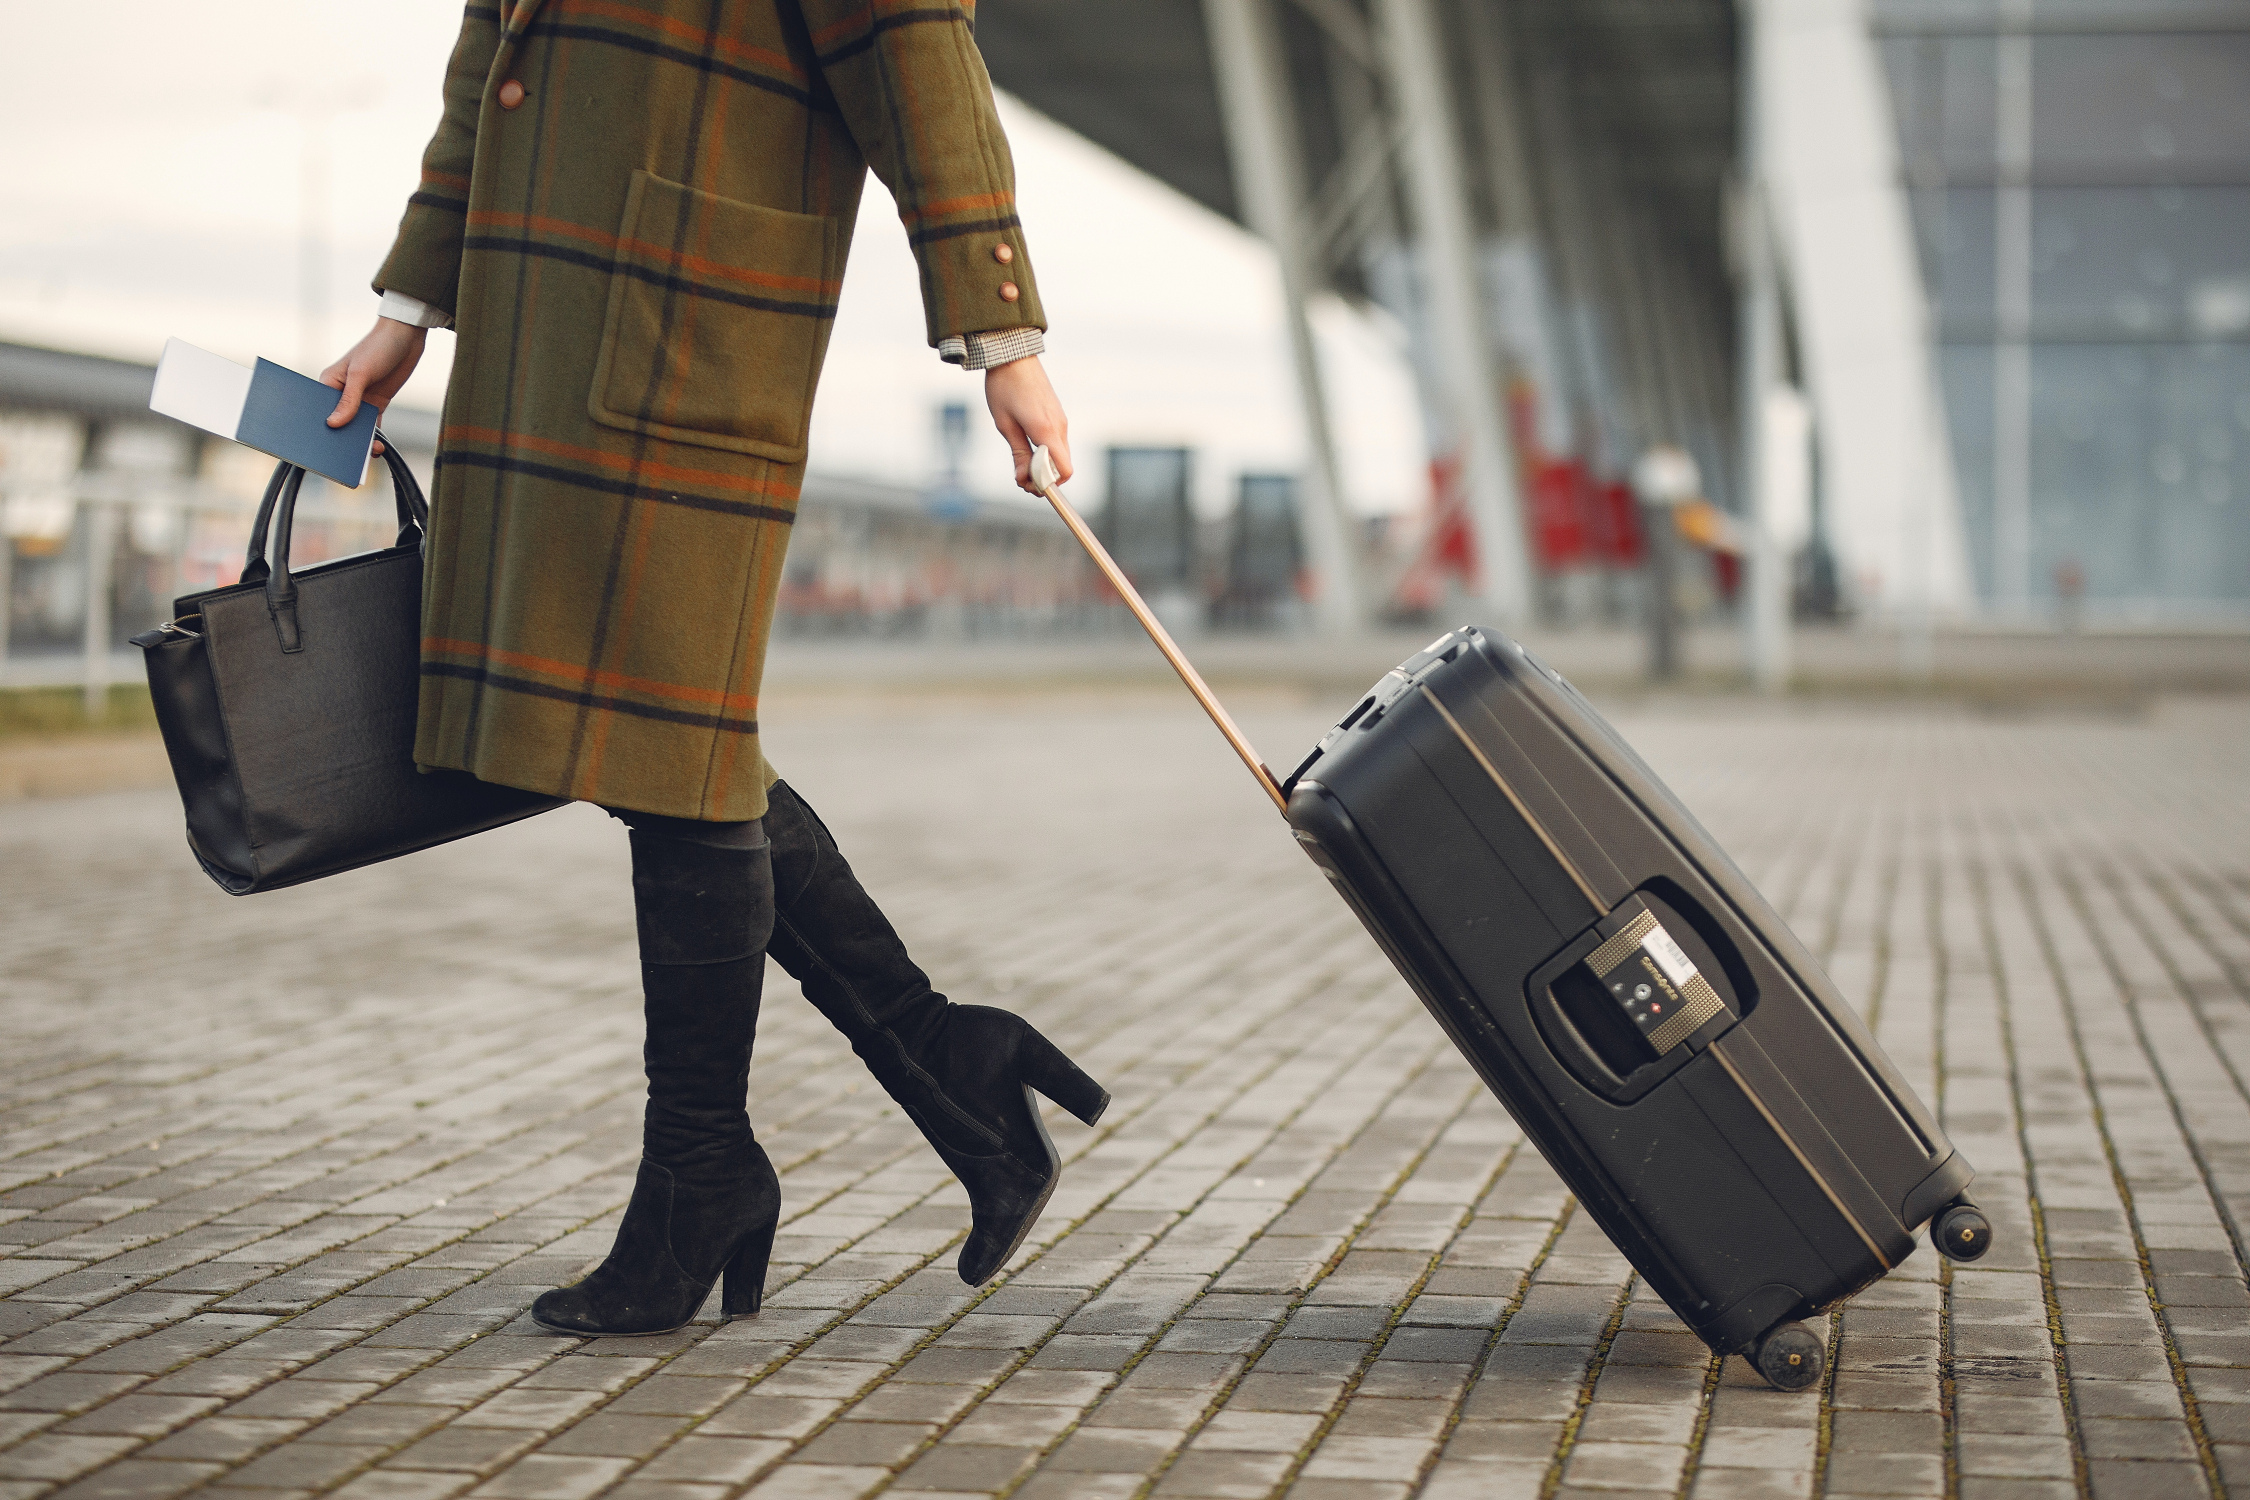 Want to Travel in 2021? Use These Budget-Friendly, COVID-Safe Tips